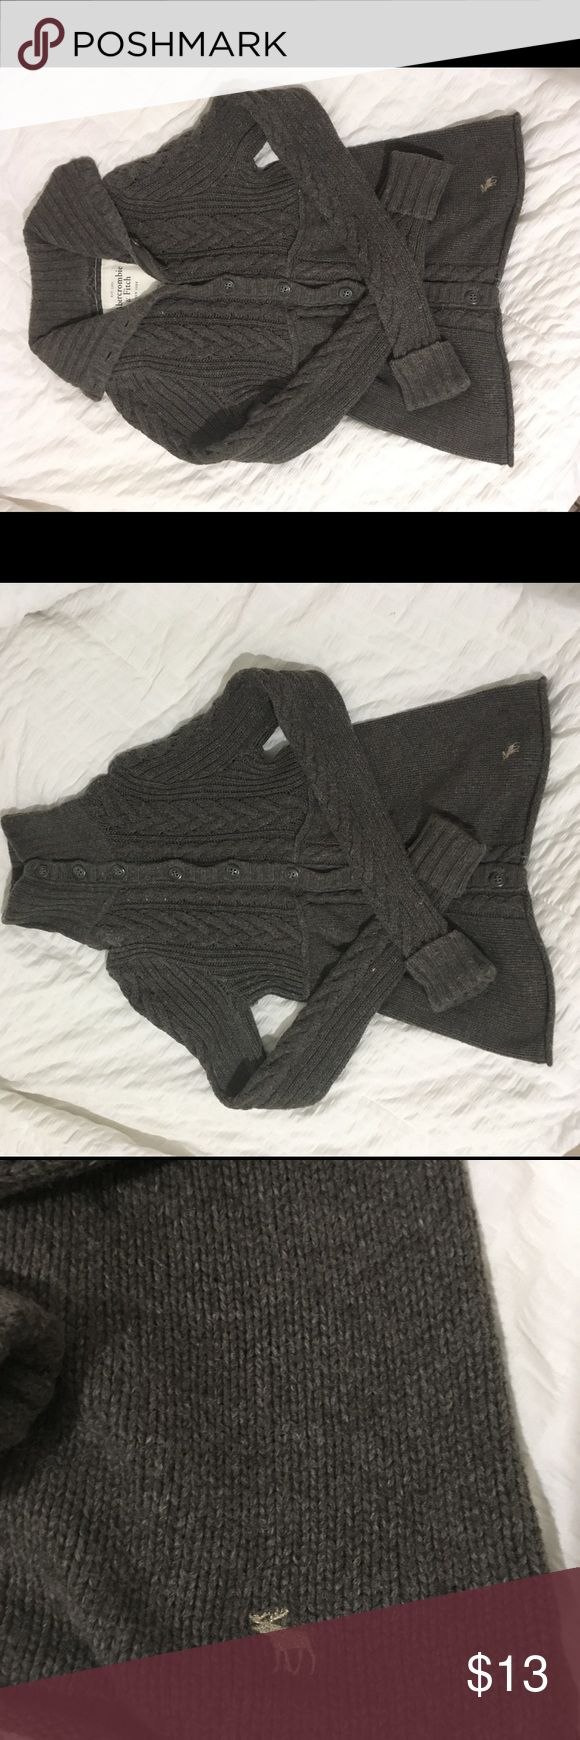 Abercrombie & Fitch knit button up sweater Super cute knit sweater, perfect for the cool weather months.  Gently worn inspected and no flaws seen.  Fabric tag see pic Measurements taken with garment laying flat : Sleeves 33 Length 23 1/2 Pit to pit 14 Abercrombie & Fitch Sweaters Cardigans